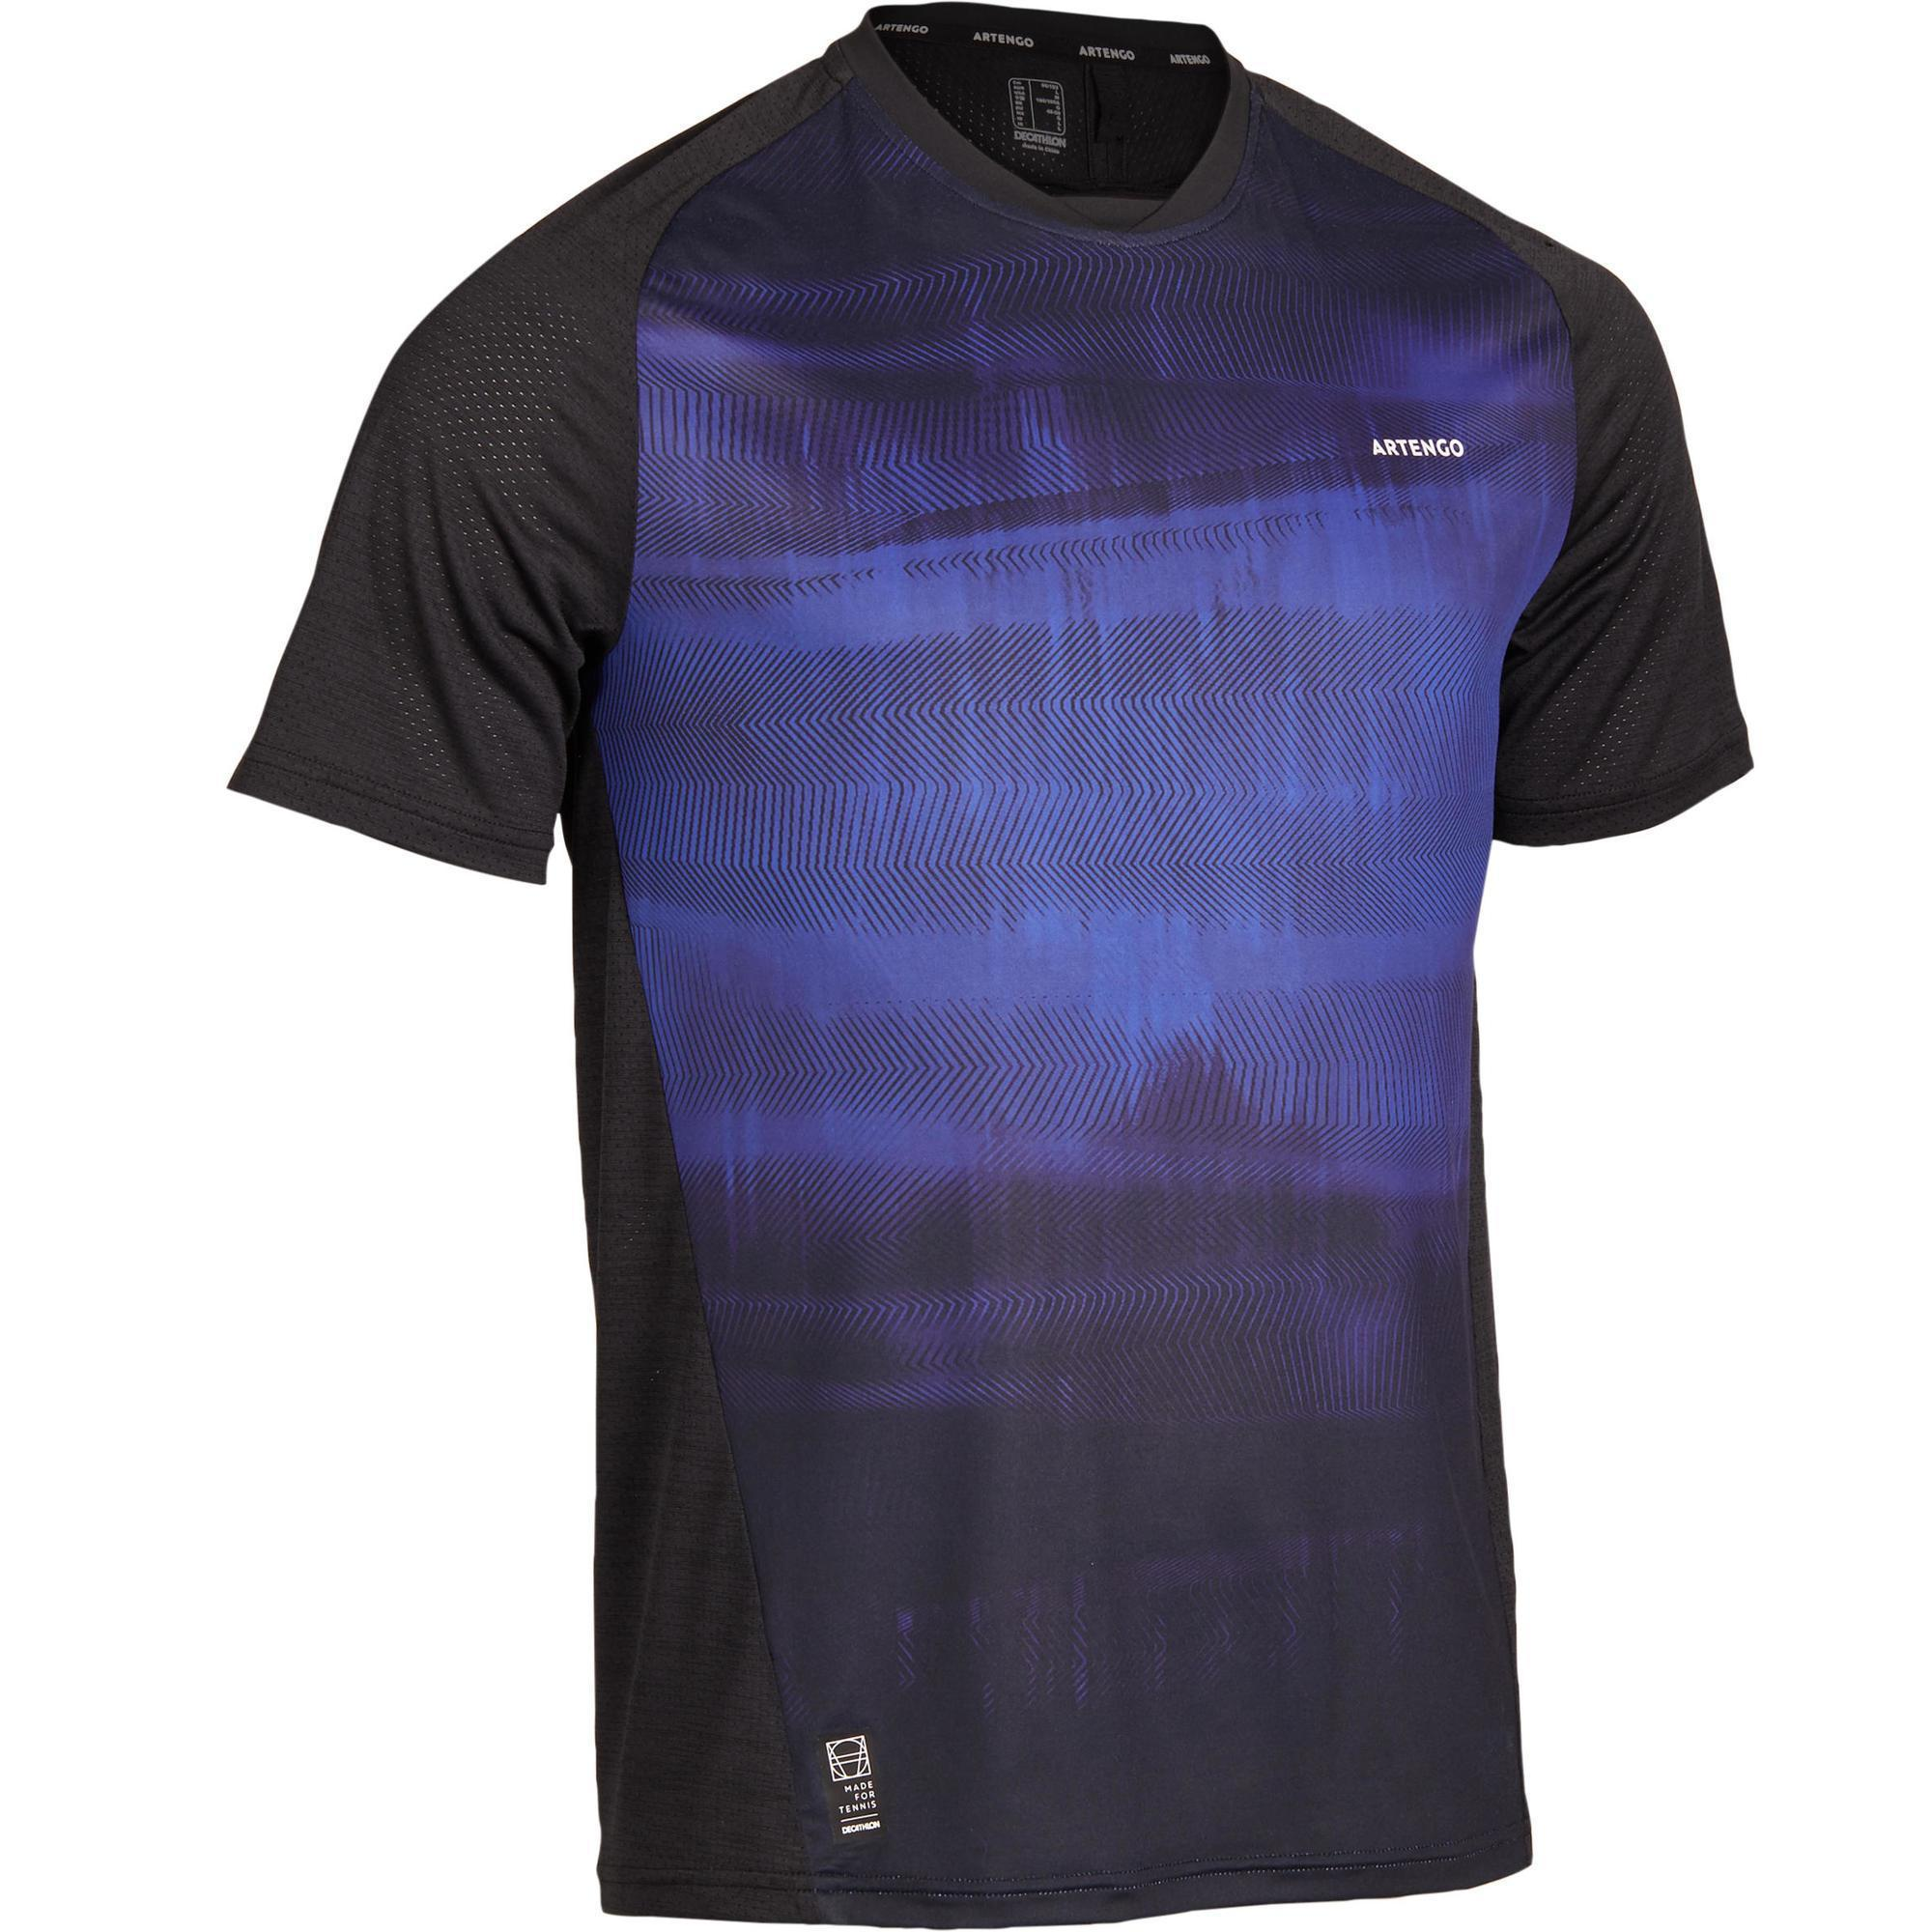 on sale dc5ee d73e8 T shirts / Polo shirts - Dry 500 Tennis T-Shirt - Black/Blue